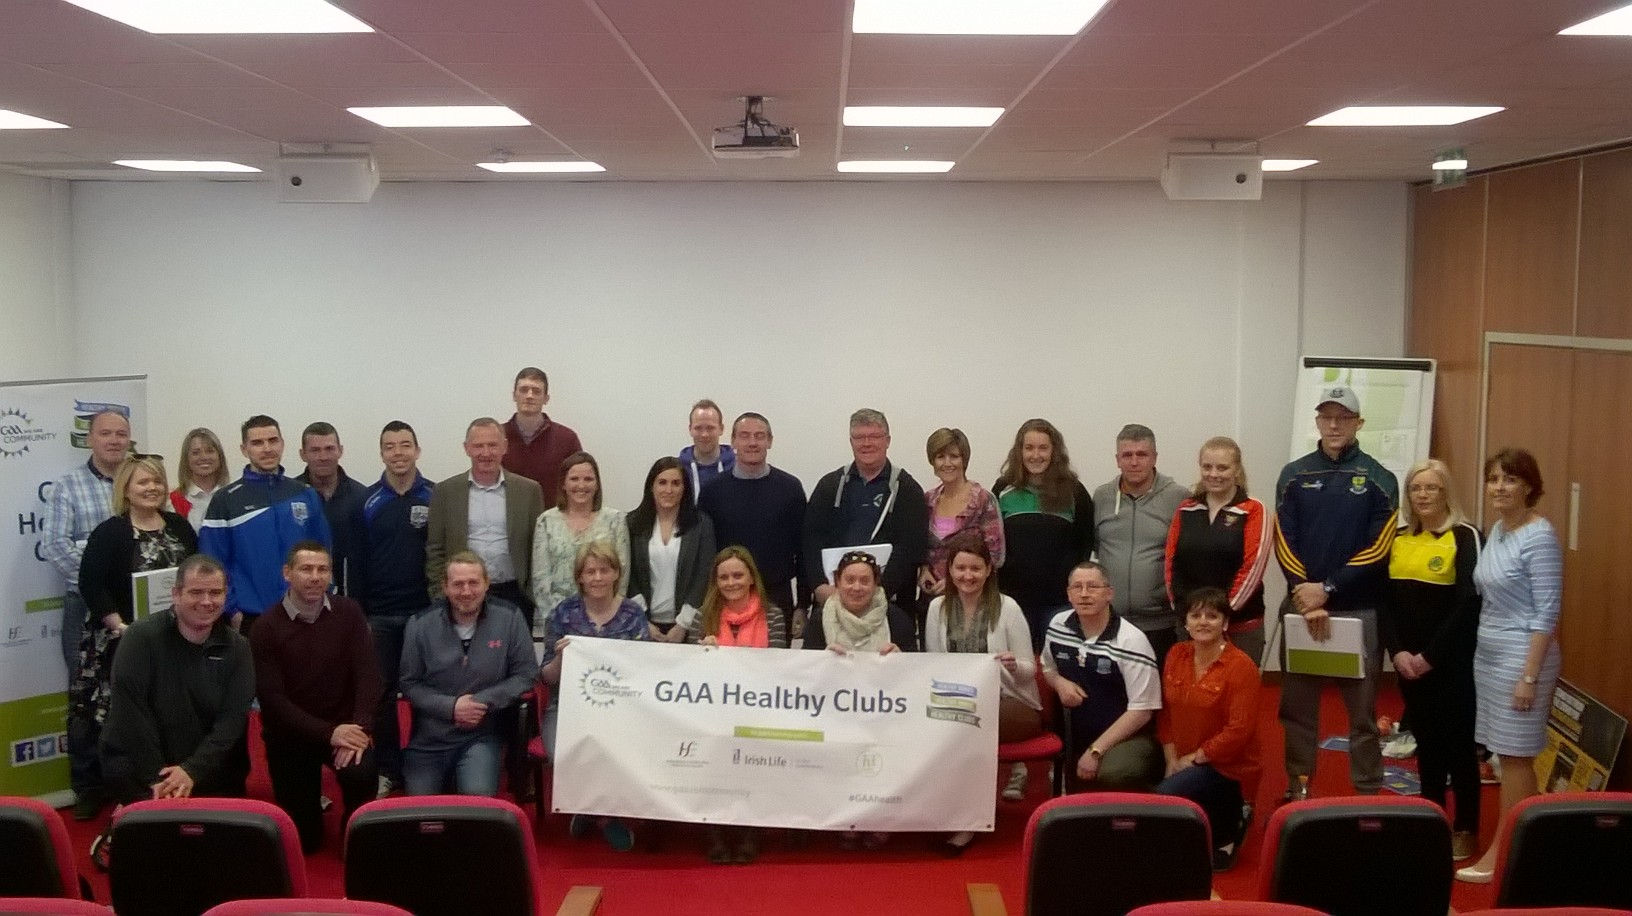 Ulster Health Committee meets Ulster Healthy Clubs